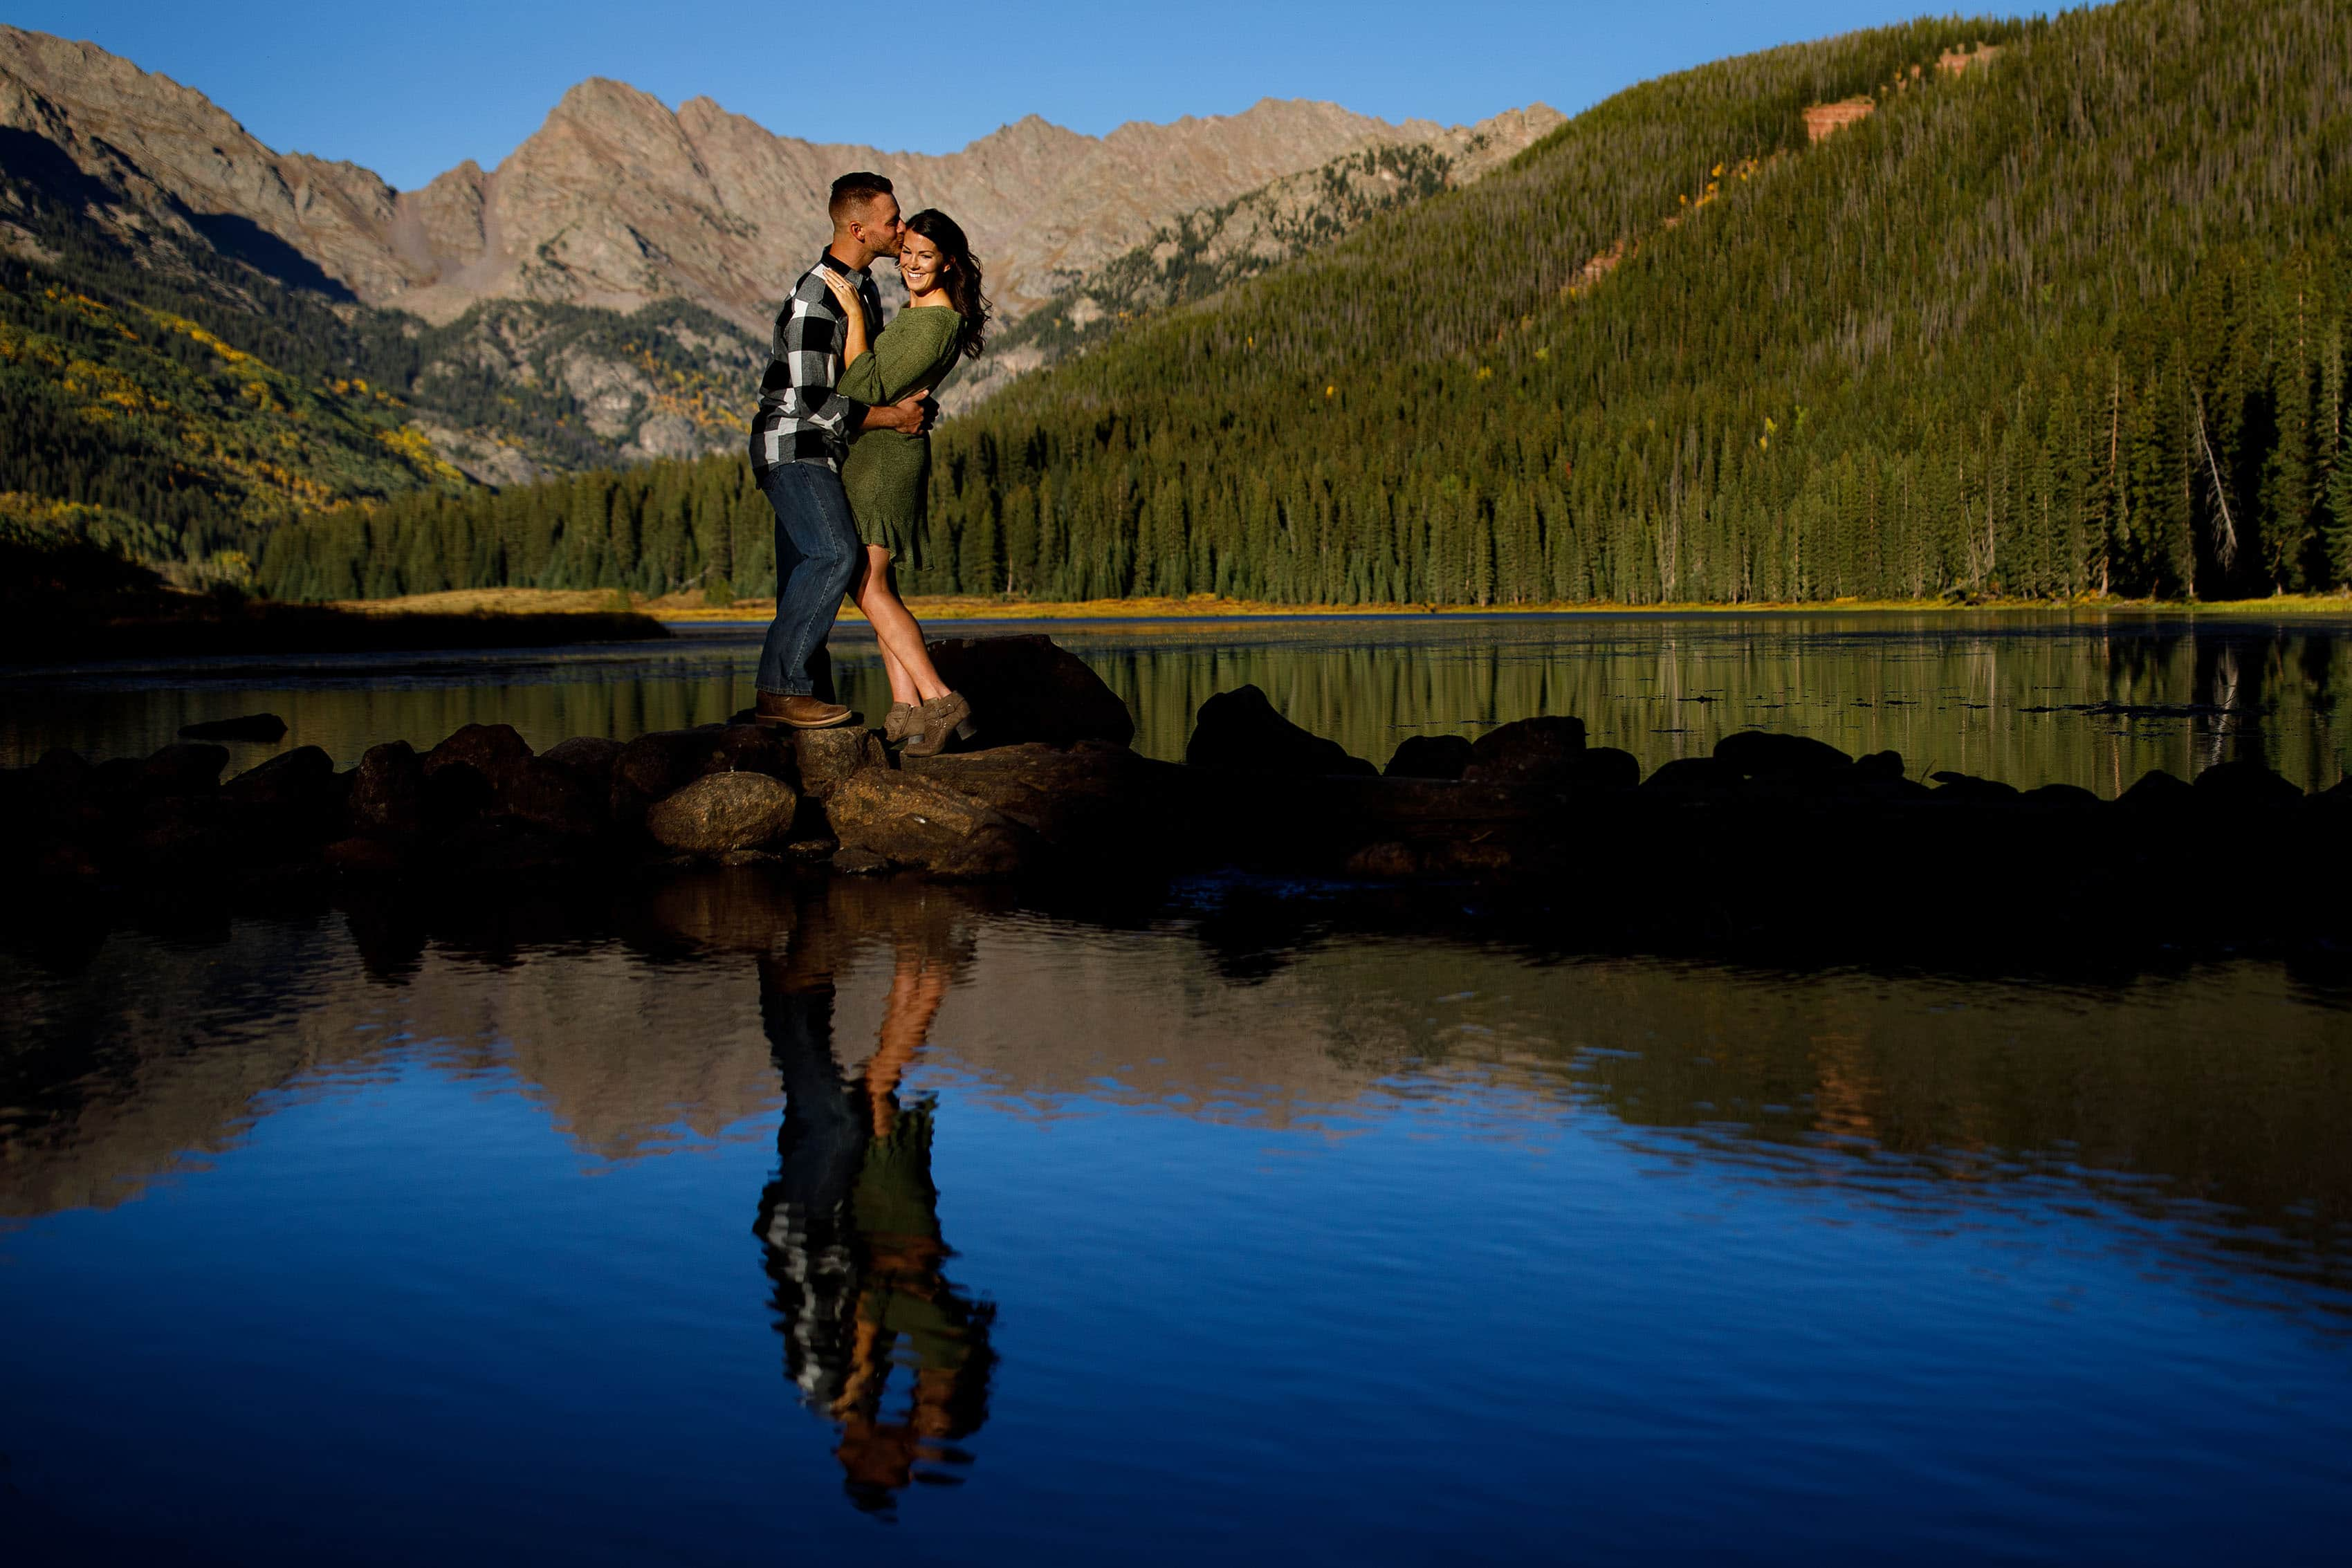 Brendan kisses Caroline near the water edge at Piney River Ranch during their engagement session in Vail